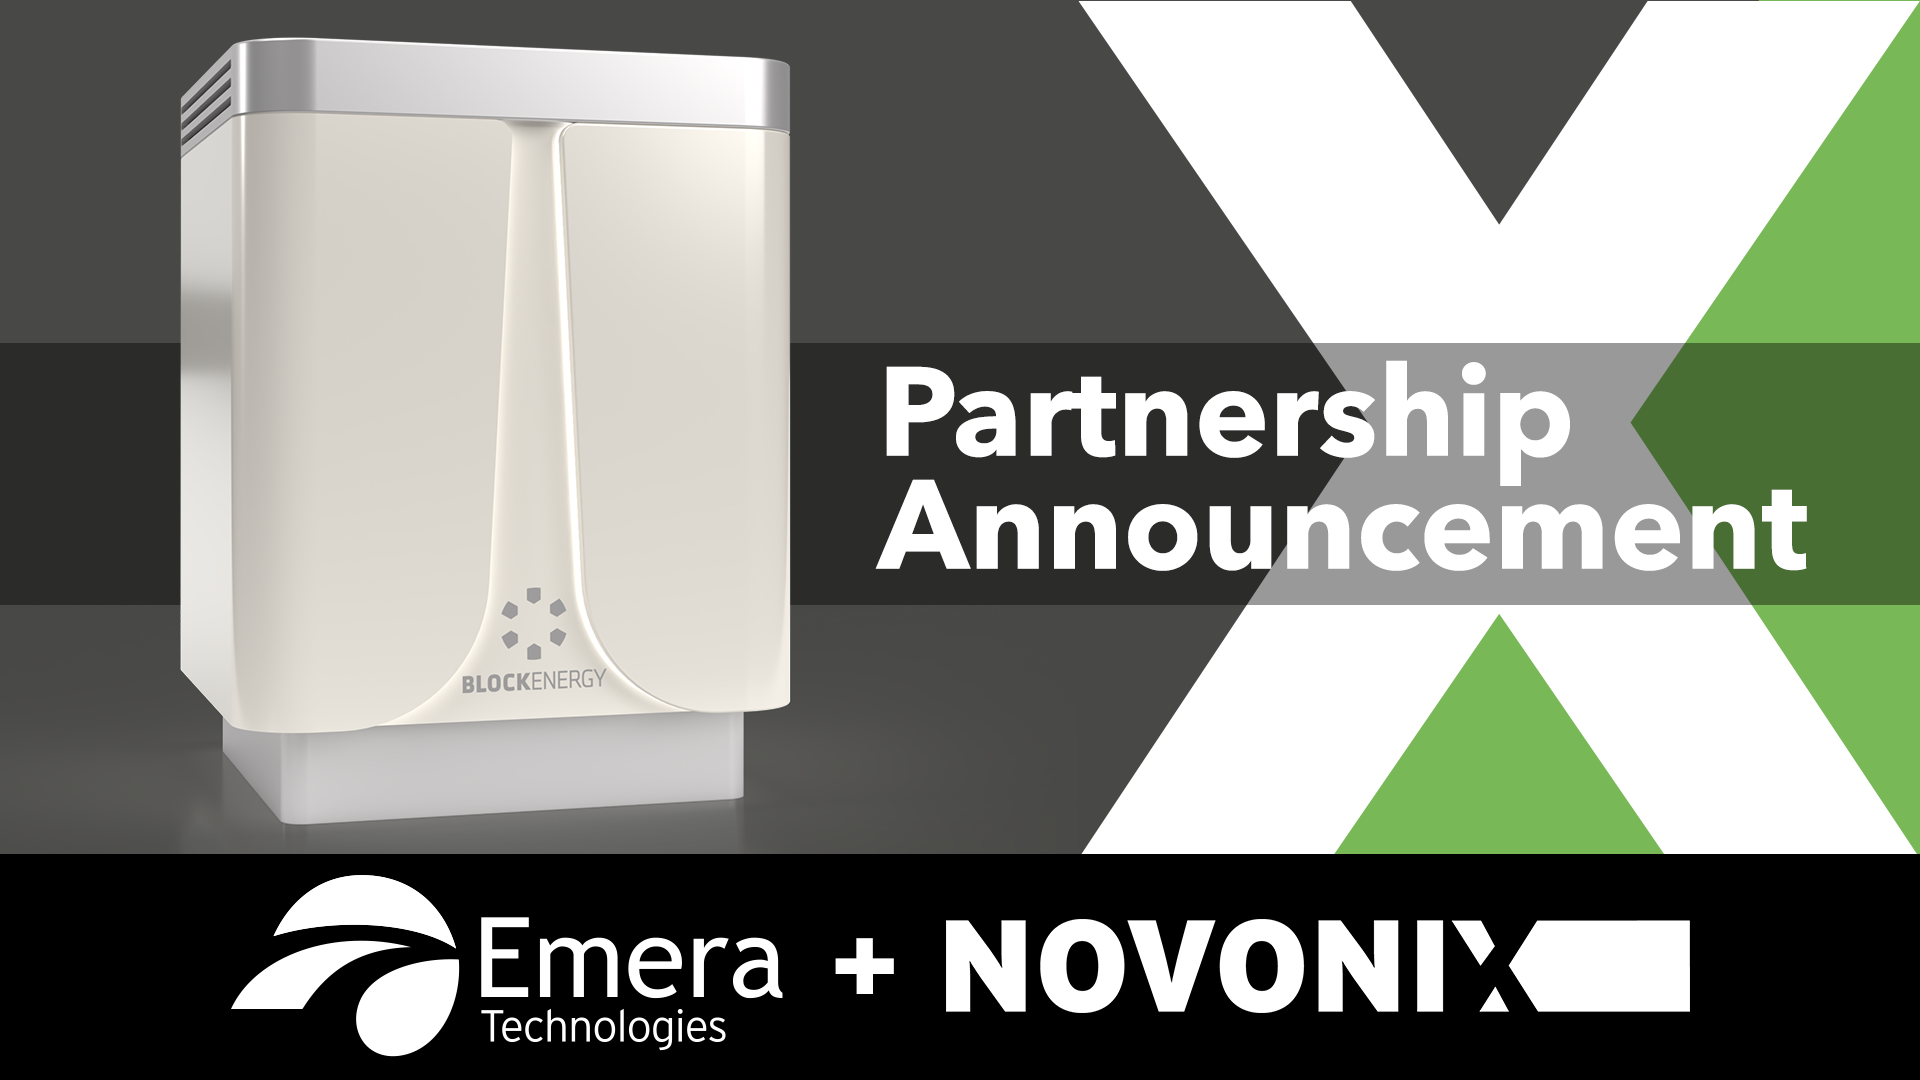 Novonix Partnership with Emera Technologies